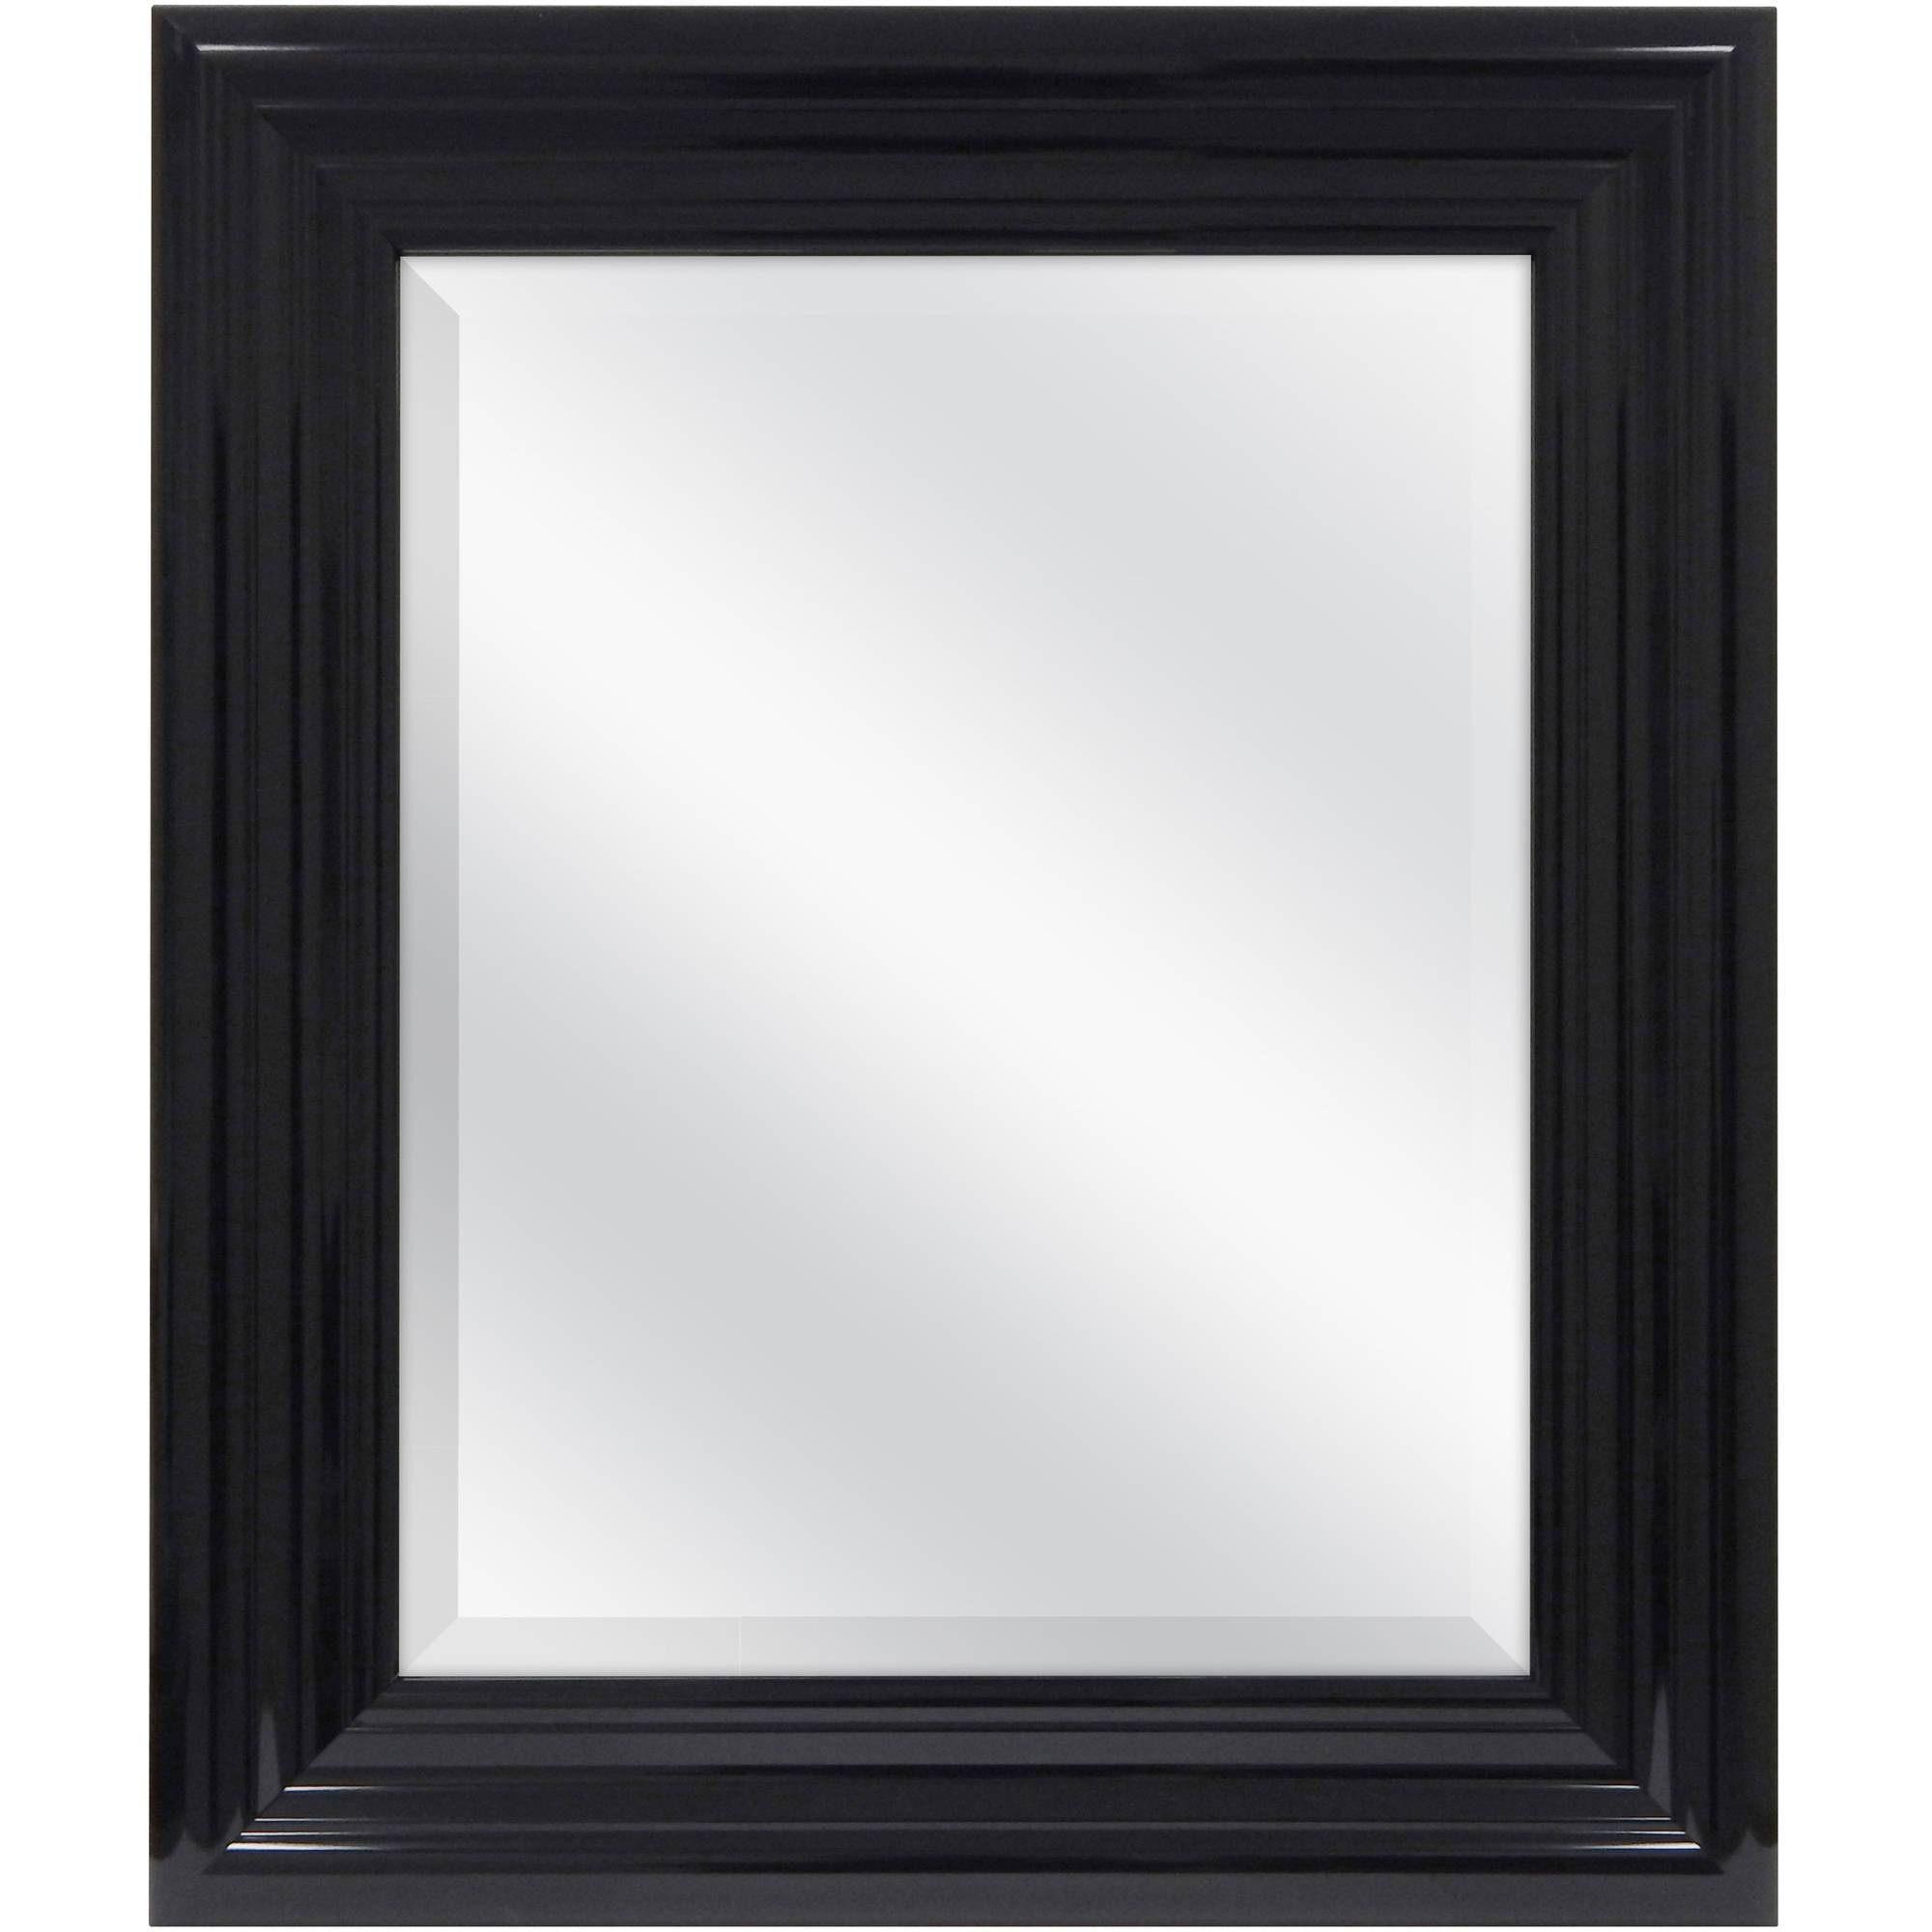 "Mainstays Beveled Wall Mirror, 23"" X 29"", Available In Multiple With Mirrors (View 5 of 15)"